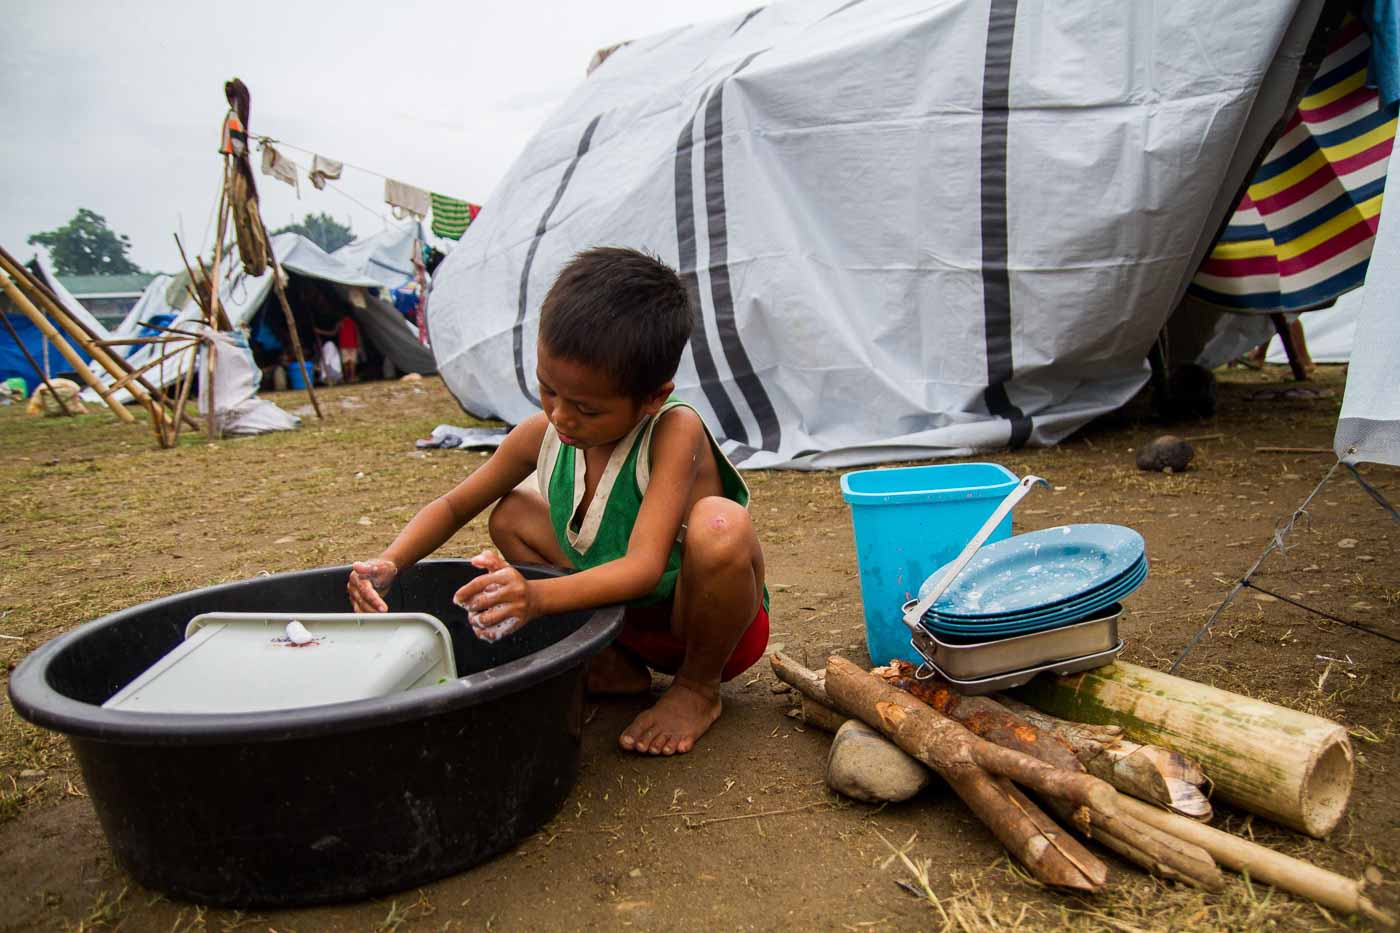 CAUGHT IN THE CROSSFIRE. A Lumad child washes dishes after the family's meal.